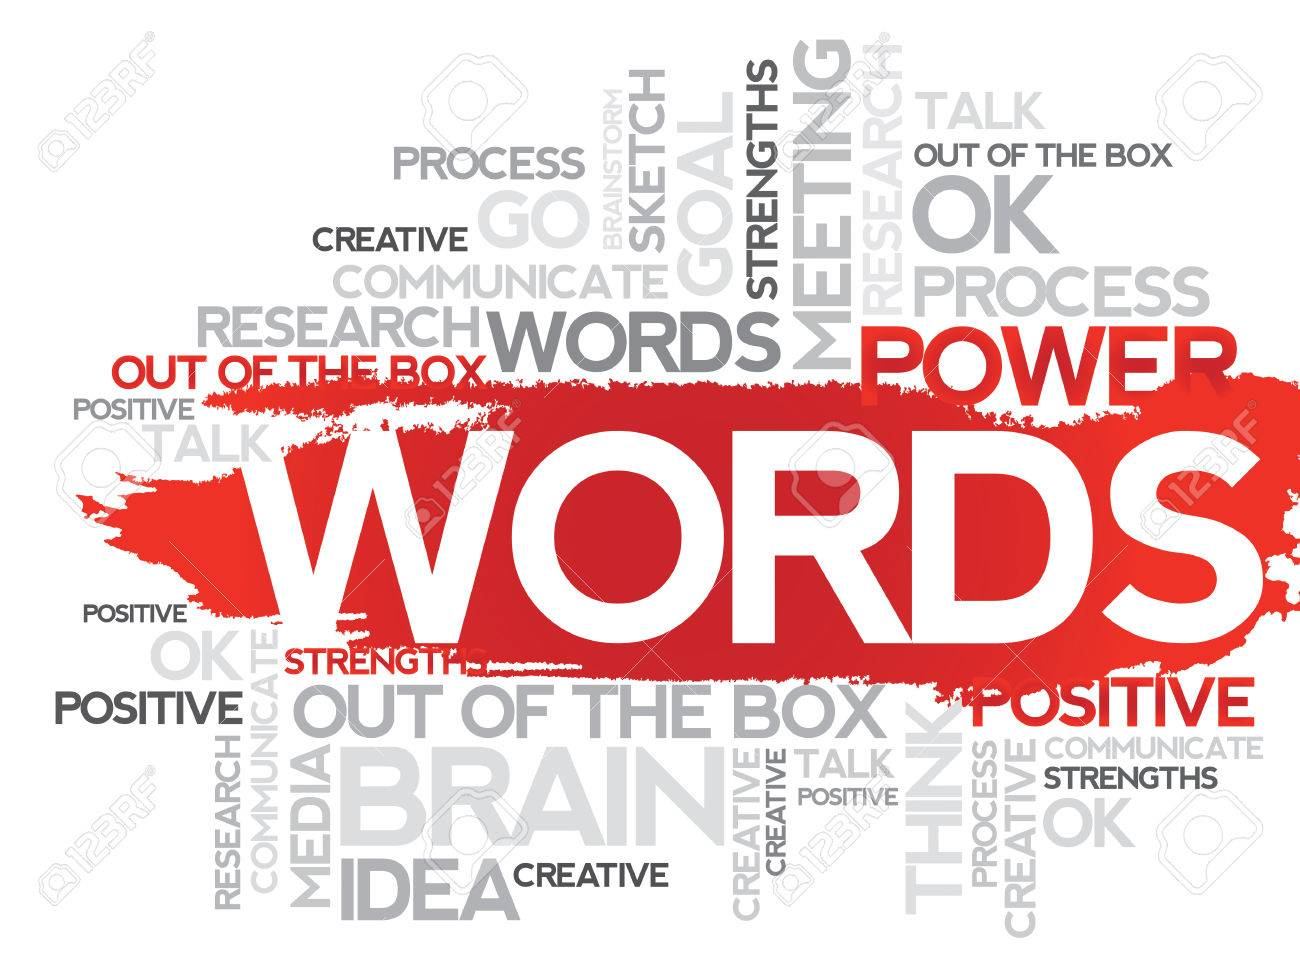 words word business collage vector background royalty free